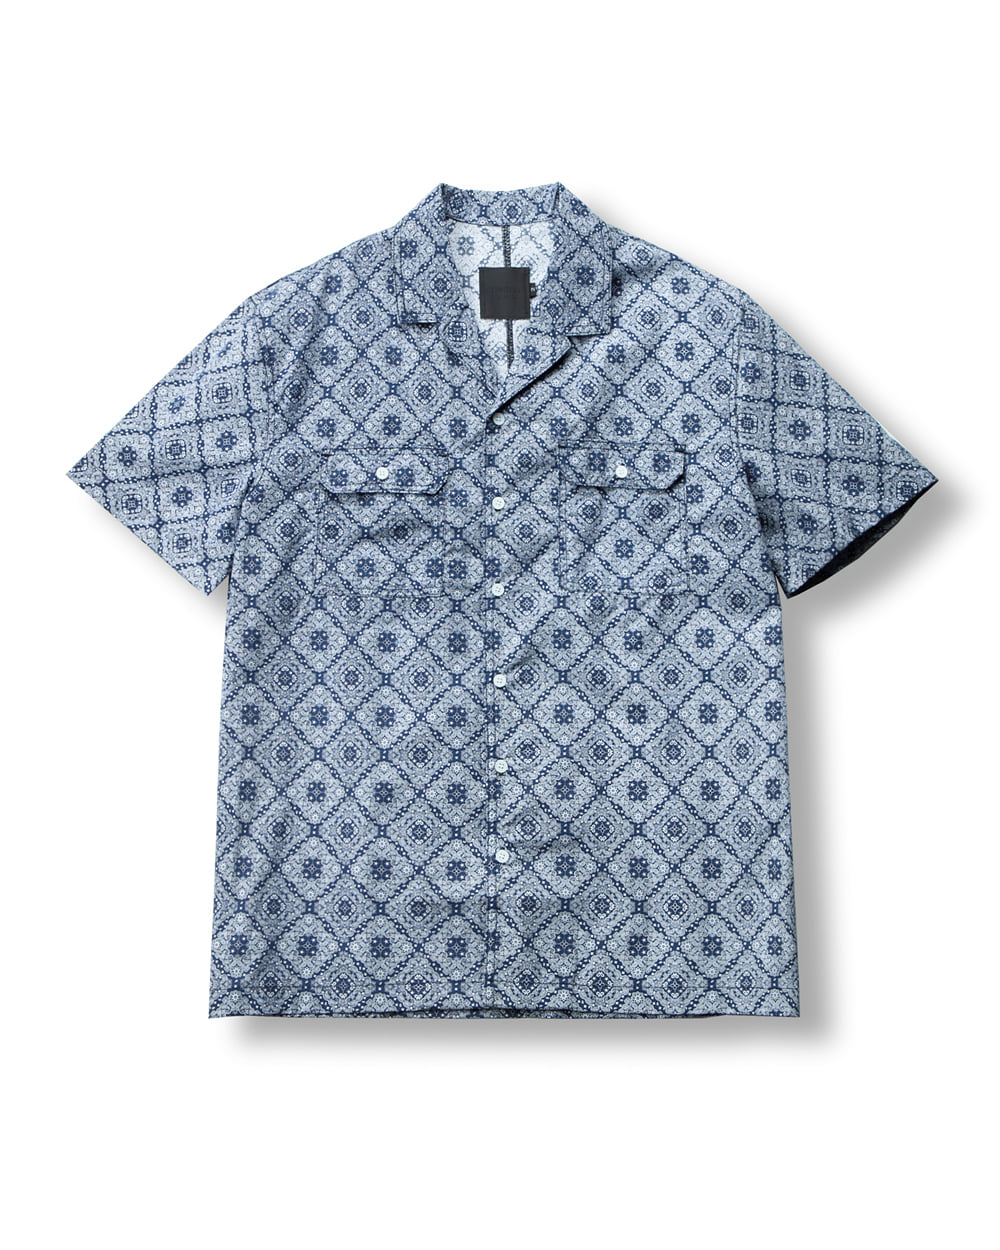 DOUBLE POCKET PAISLEY SHIRT NAVY